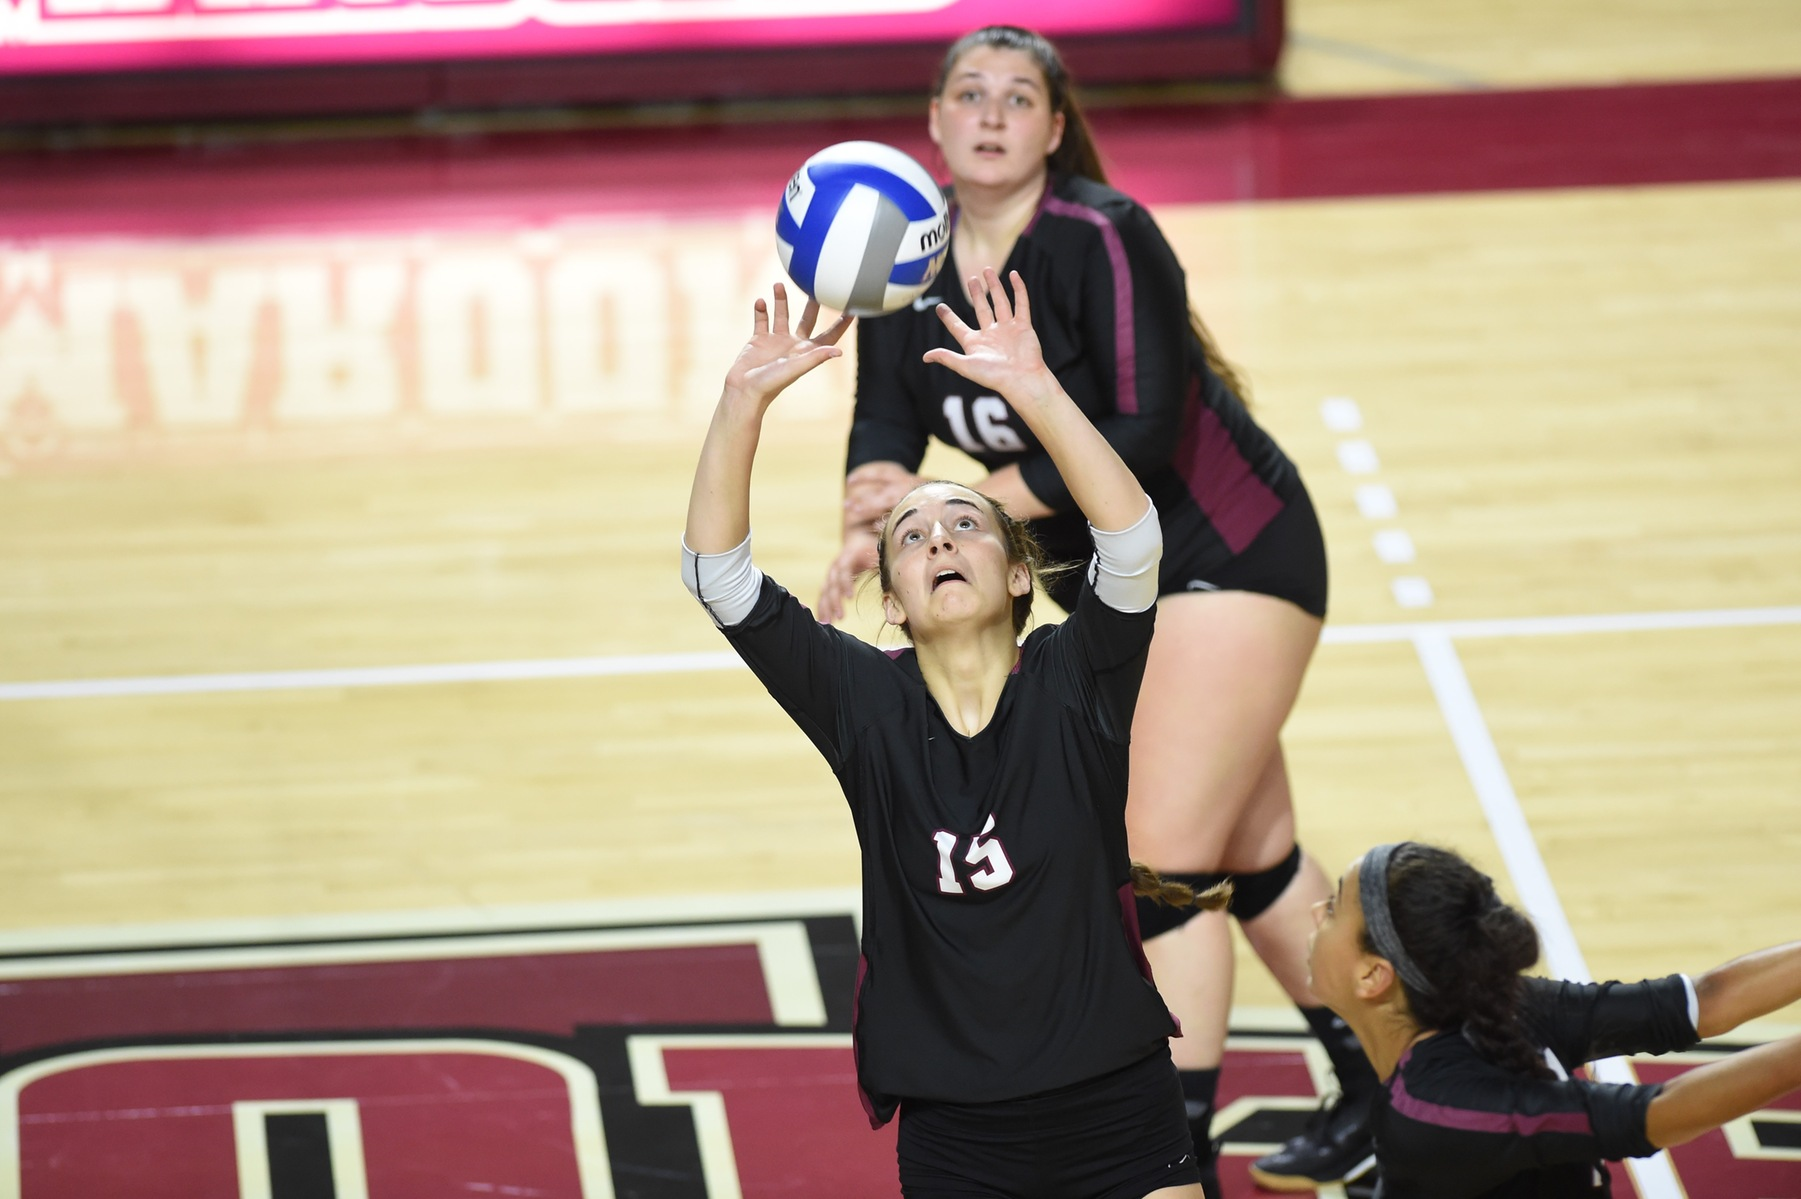 action photo of Roanoke volleyball player Olivia Newman setting the ball